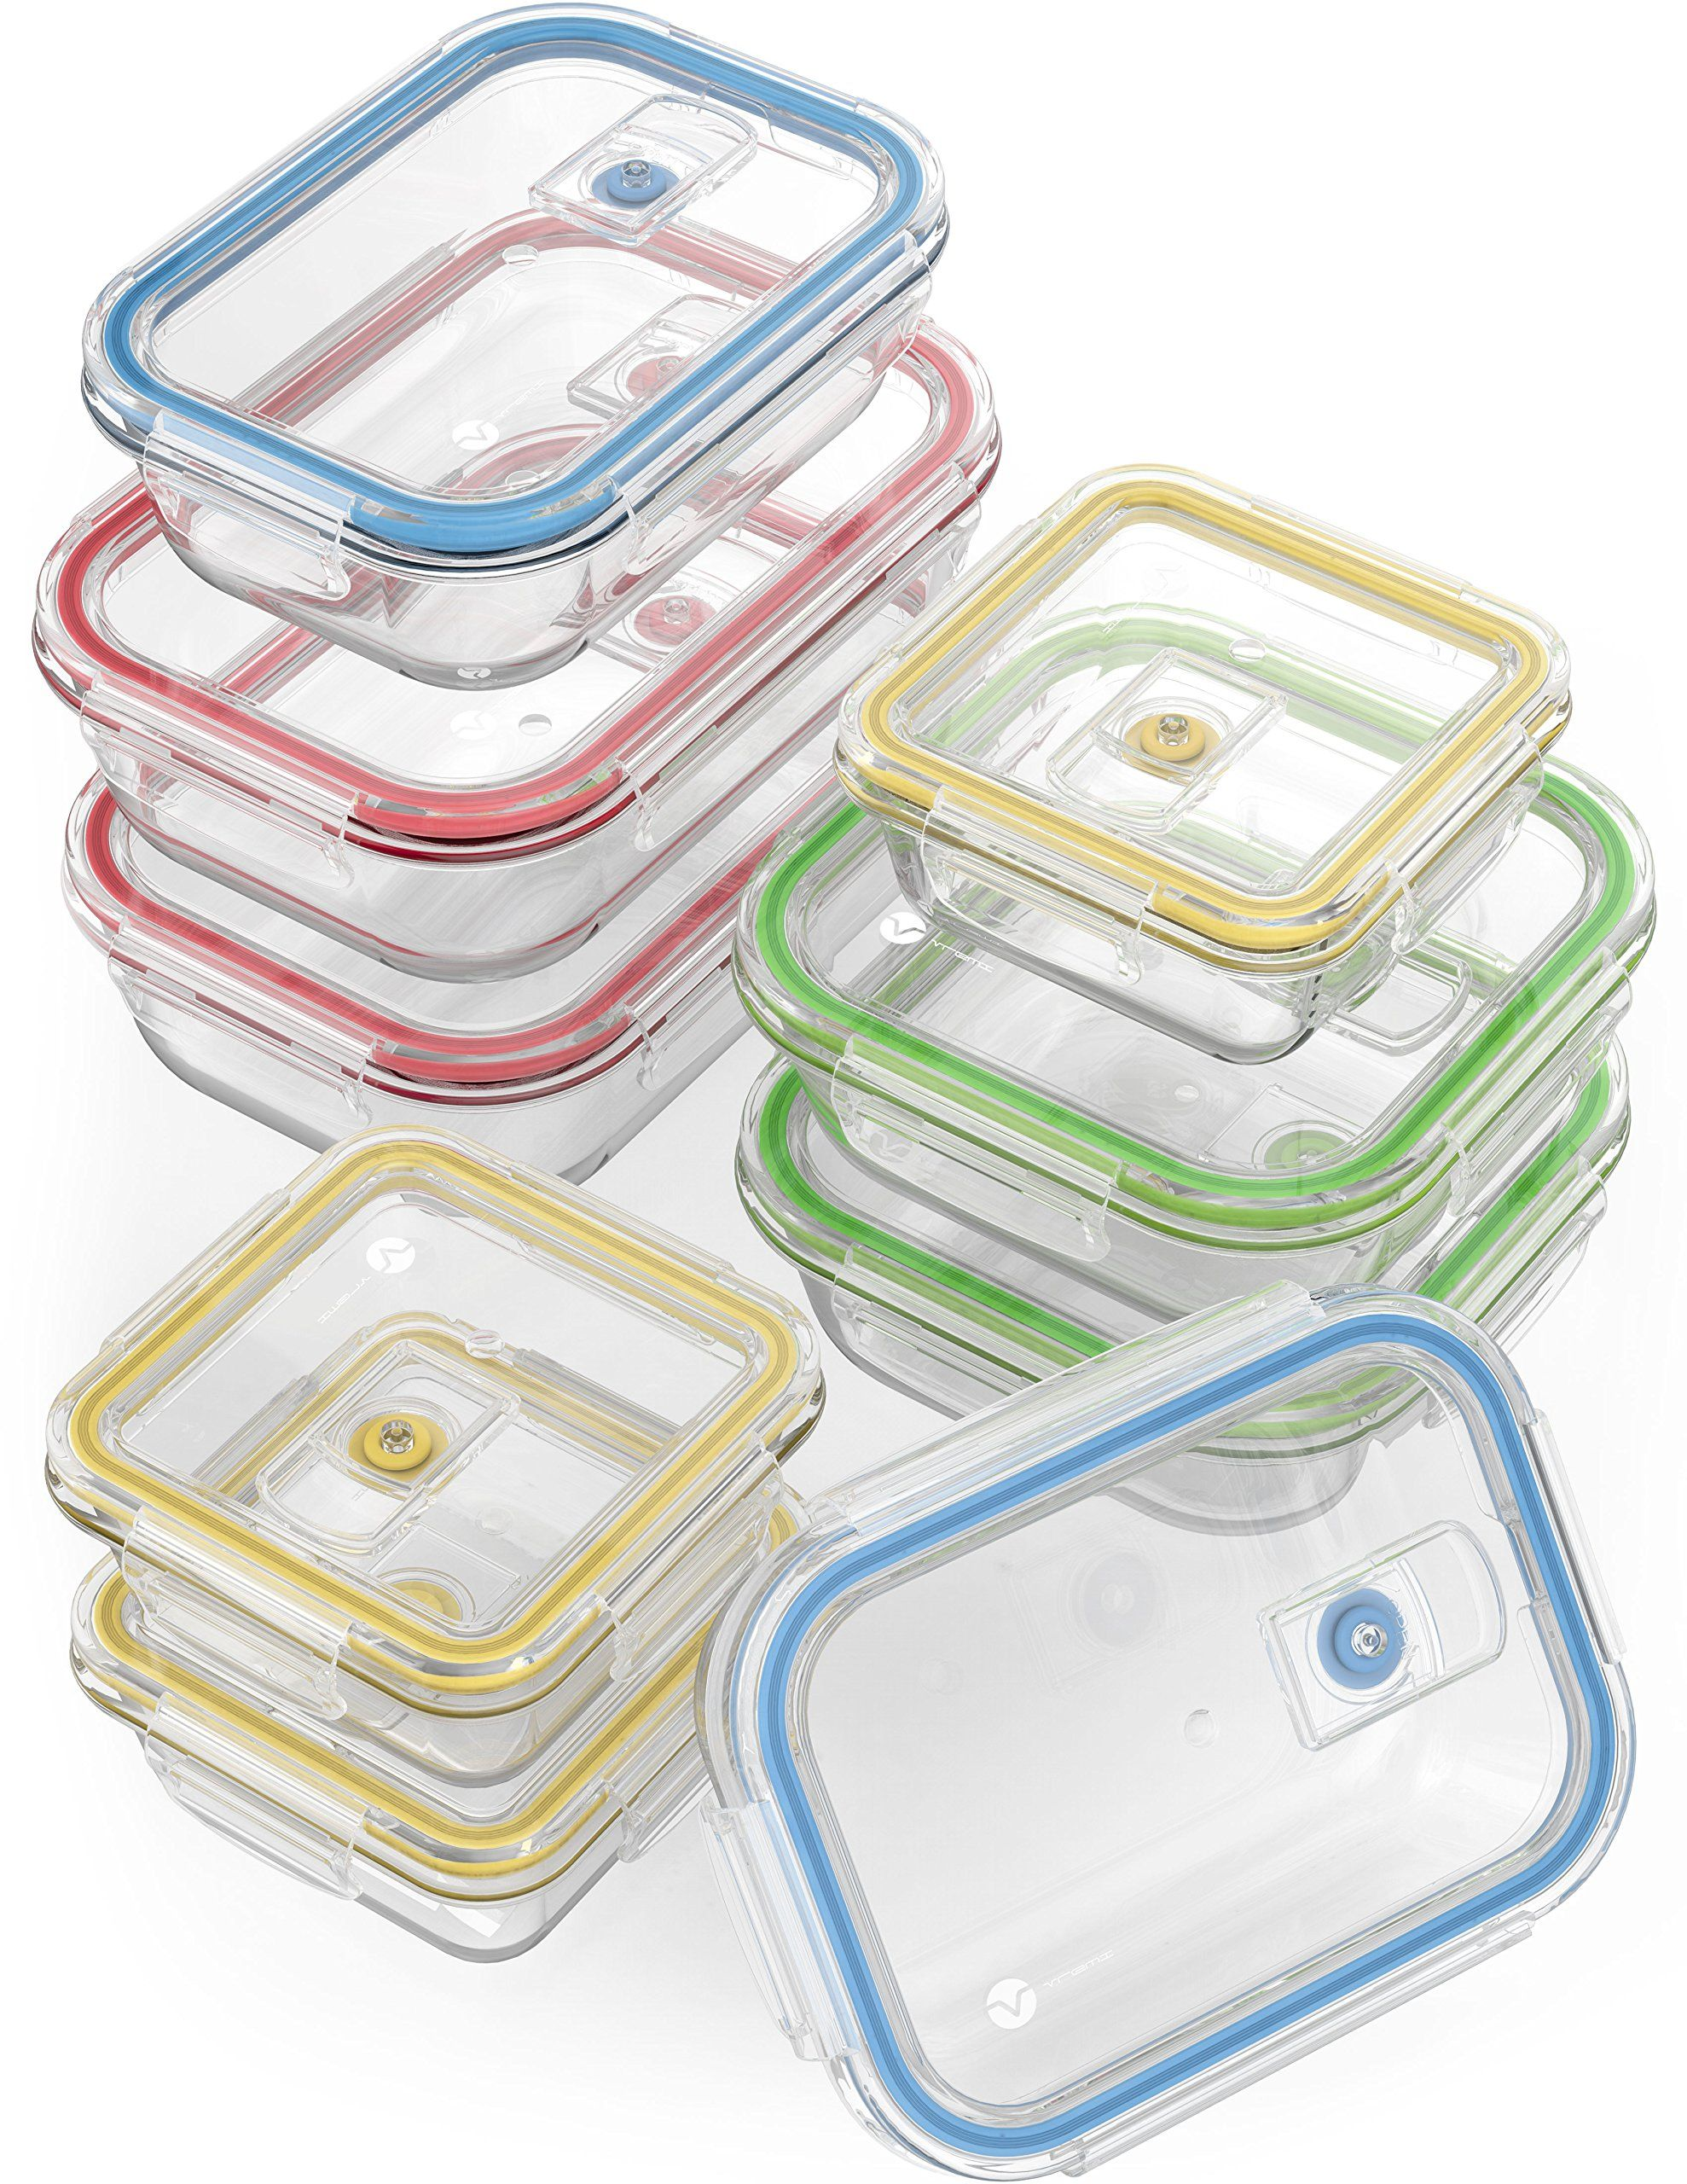 Glass Food Storage Containers With Locking Lids Vremi 18 Piece Glass Food Storage Containers With Locking Lids  Bpa